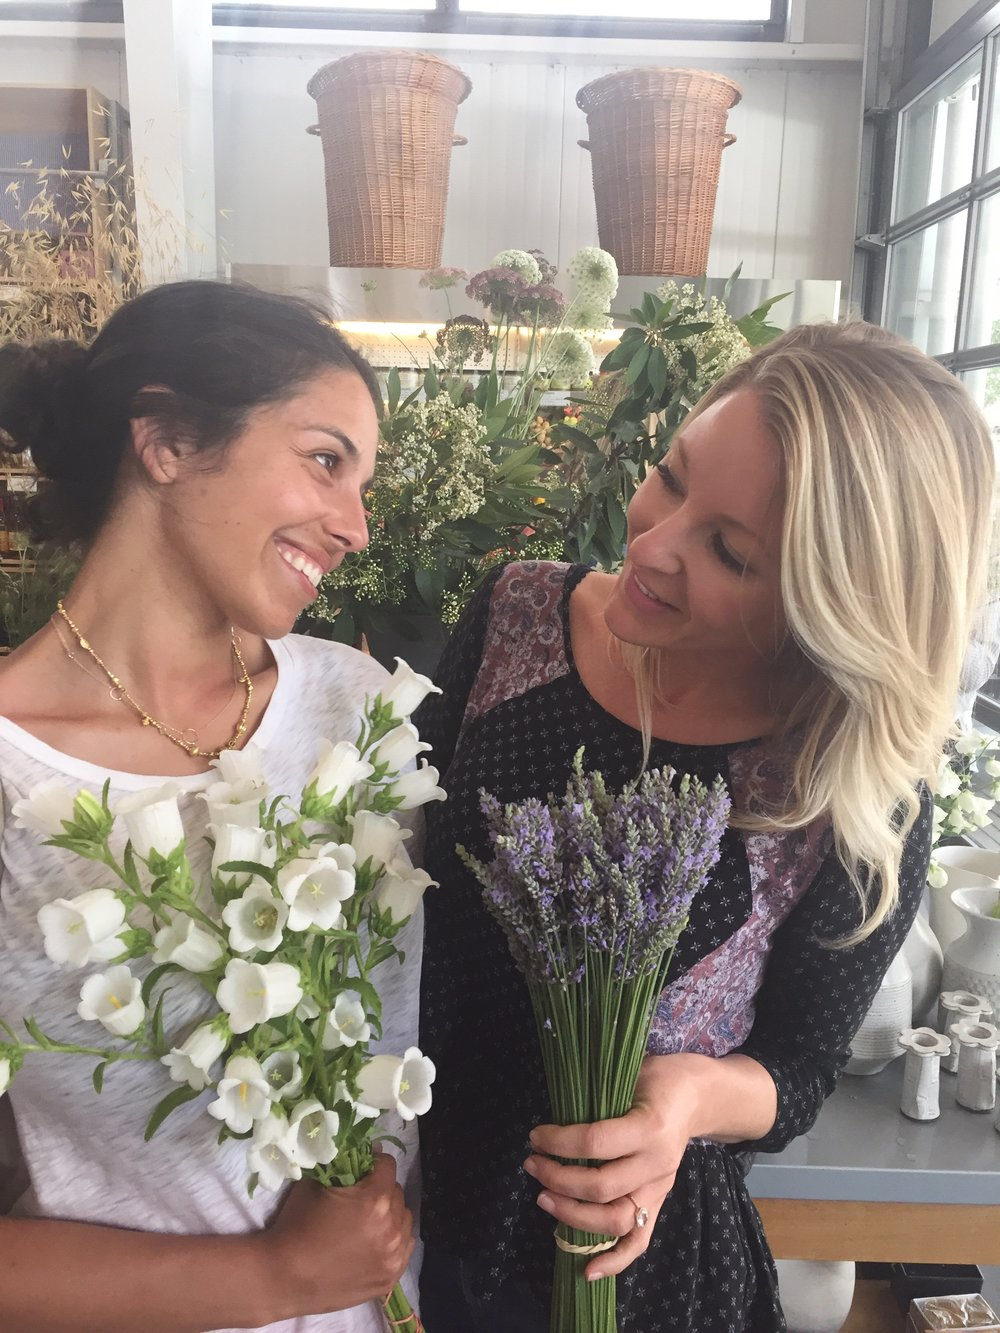 Lex-and-Kristin-with-flowers.jpg